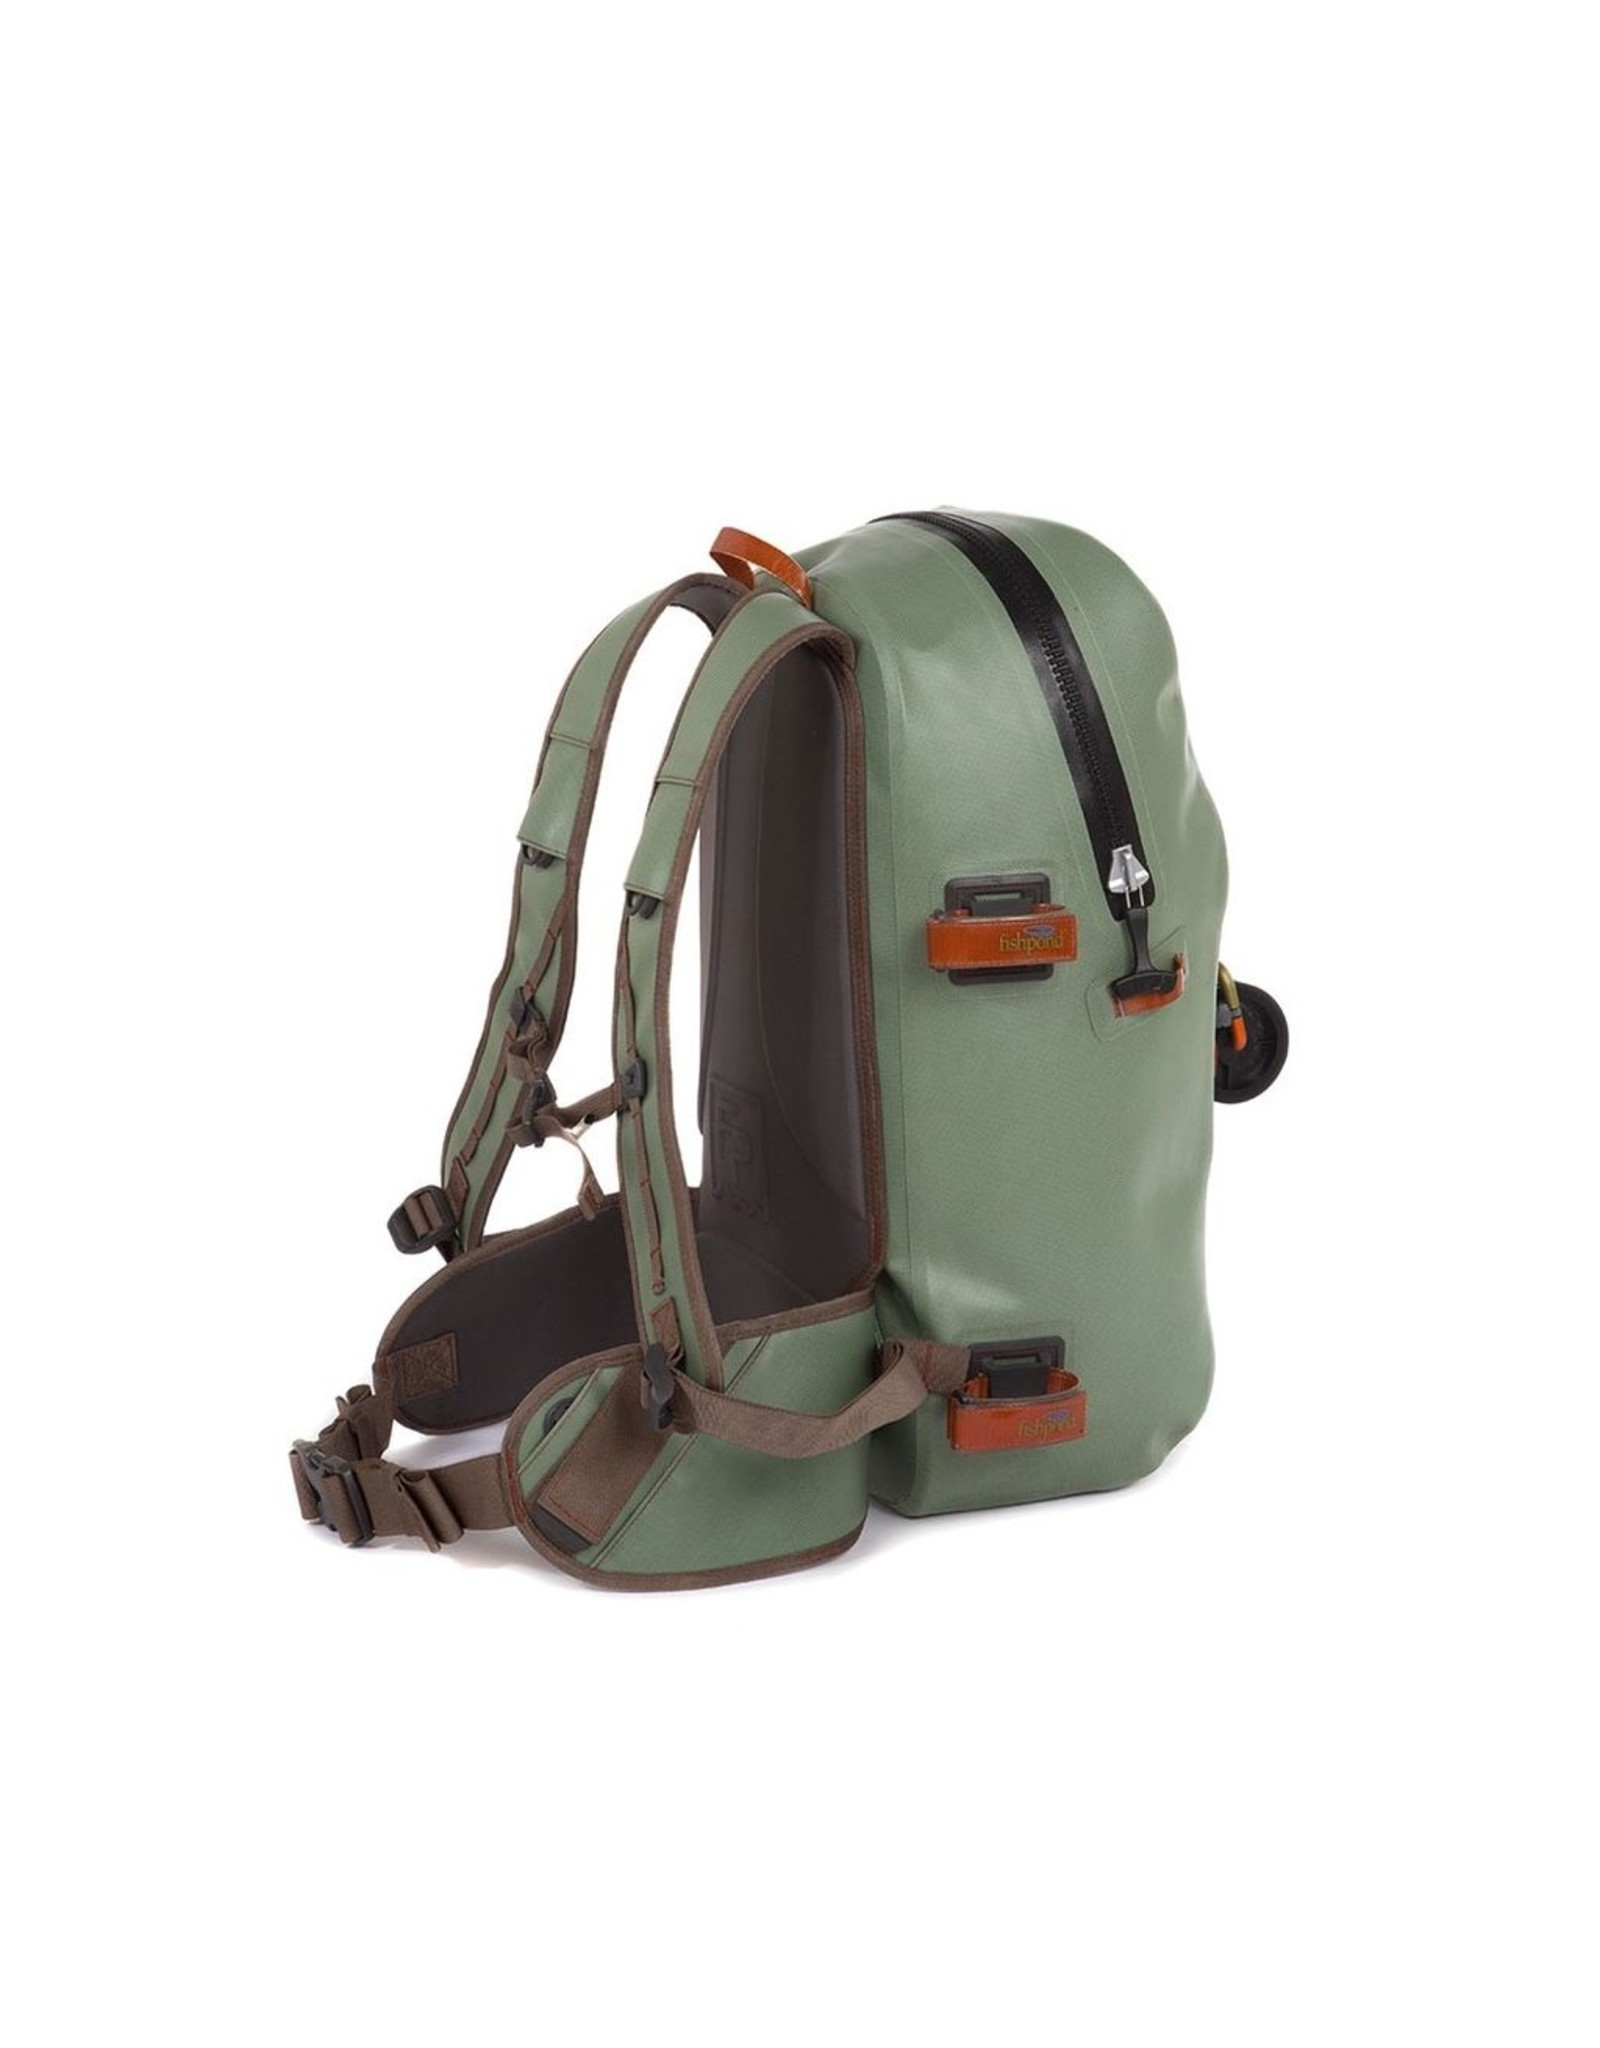 Fishpond Fishpond Thunderhead Submersible Backpack (Yucca)